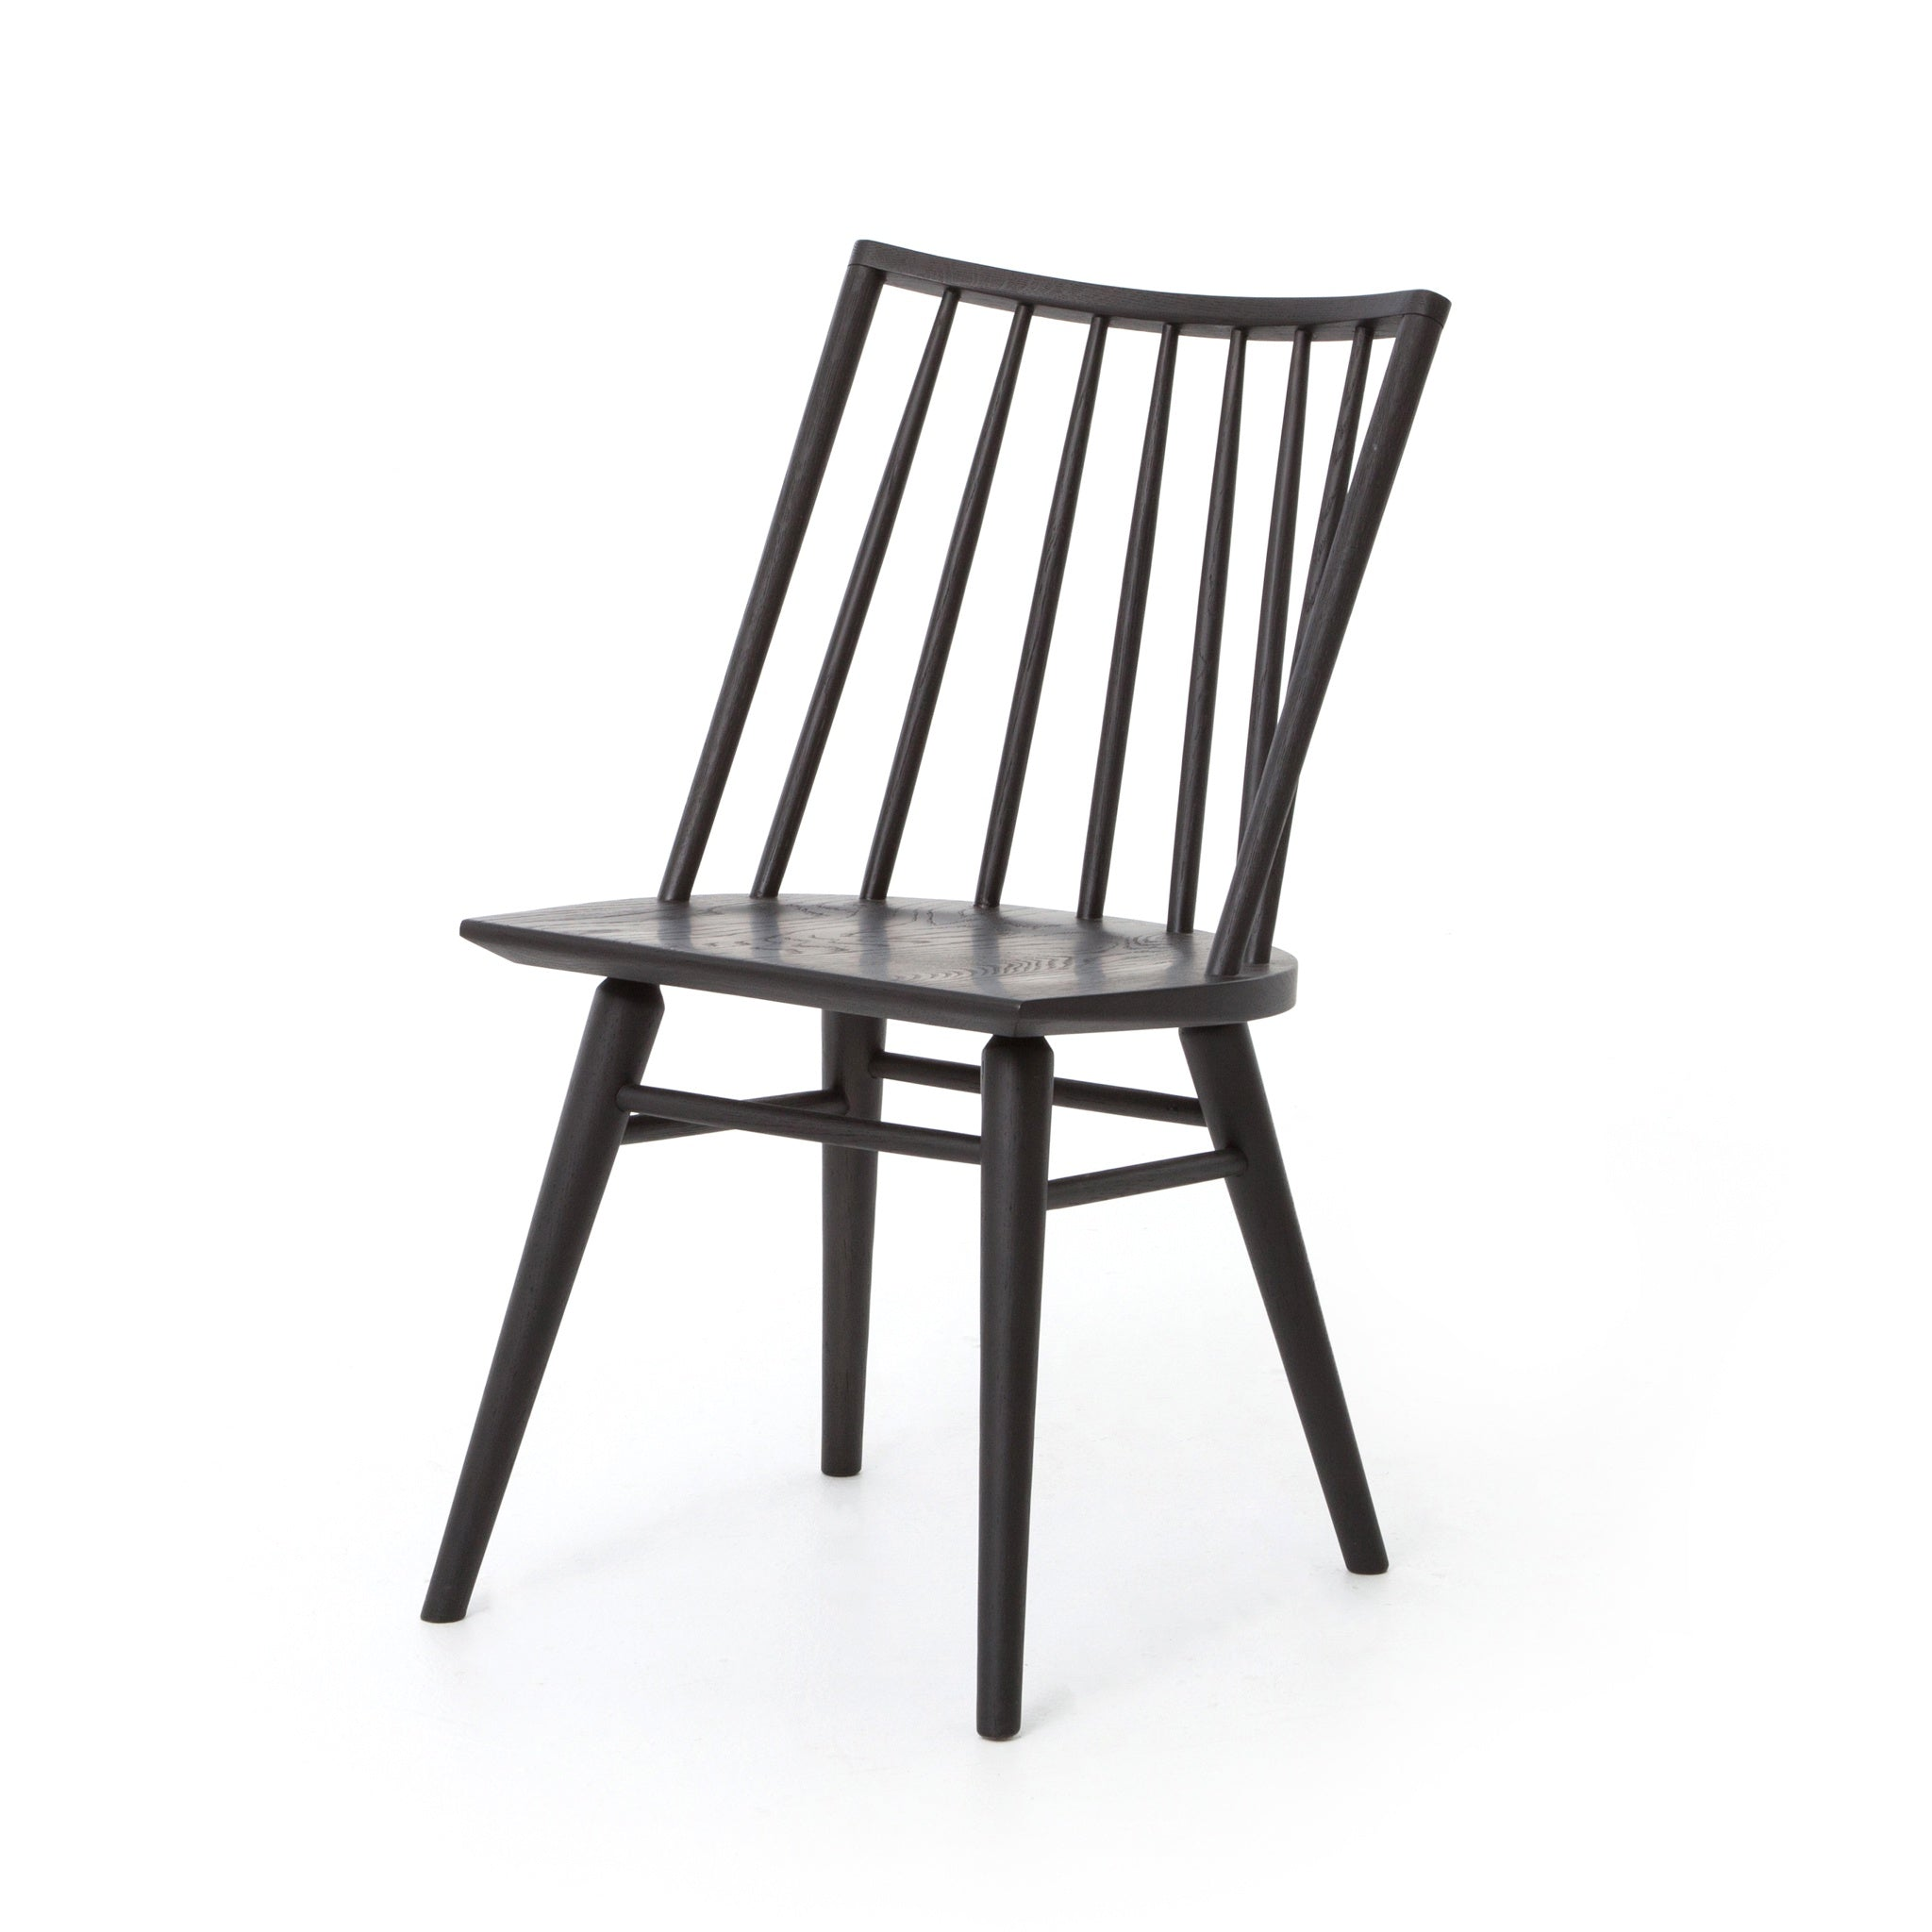 Kyle Windsor Chair - WishBasket